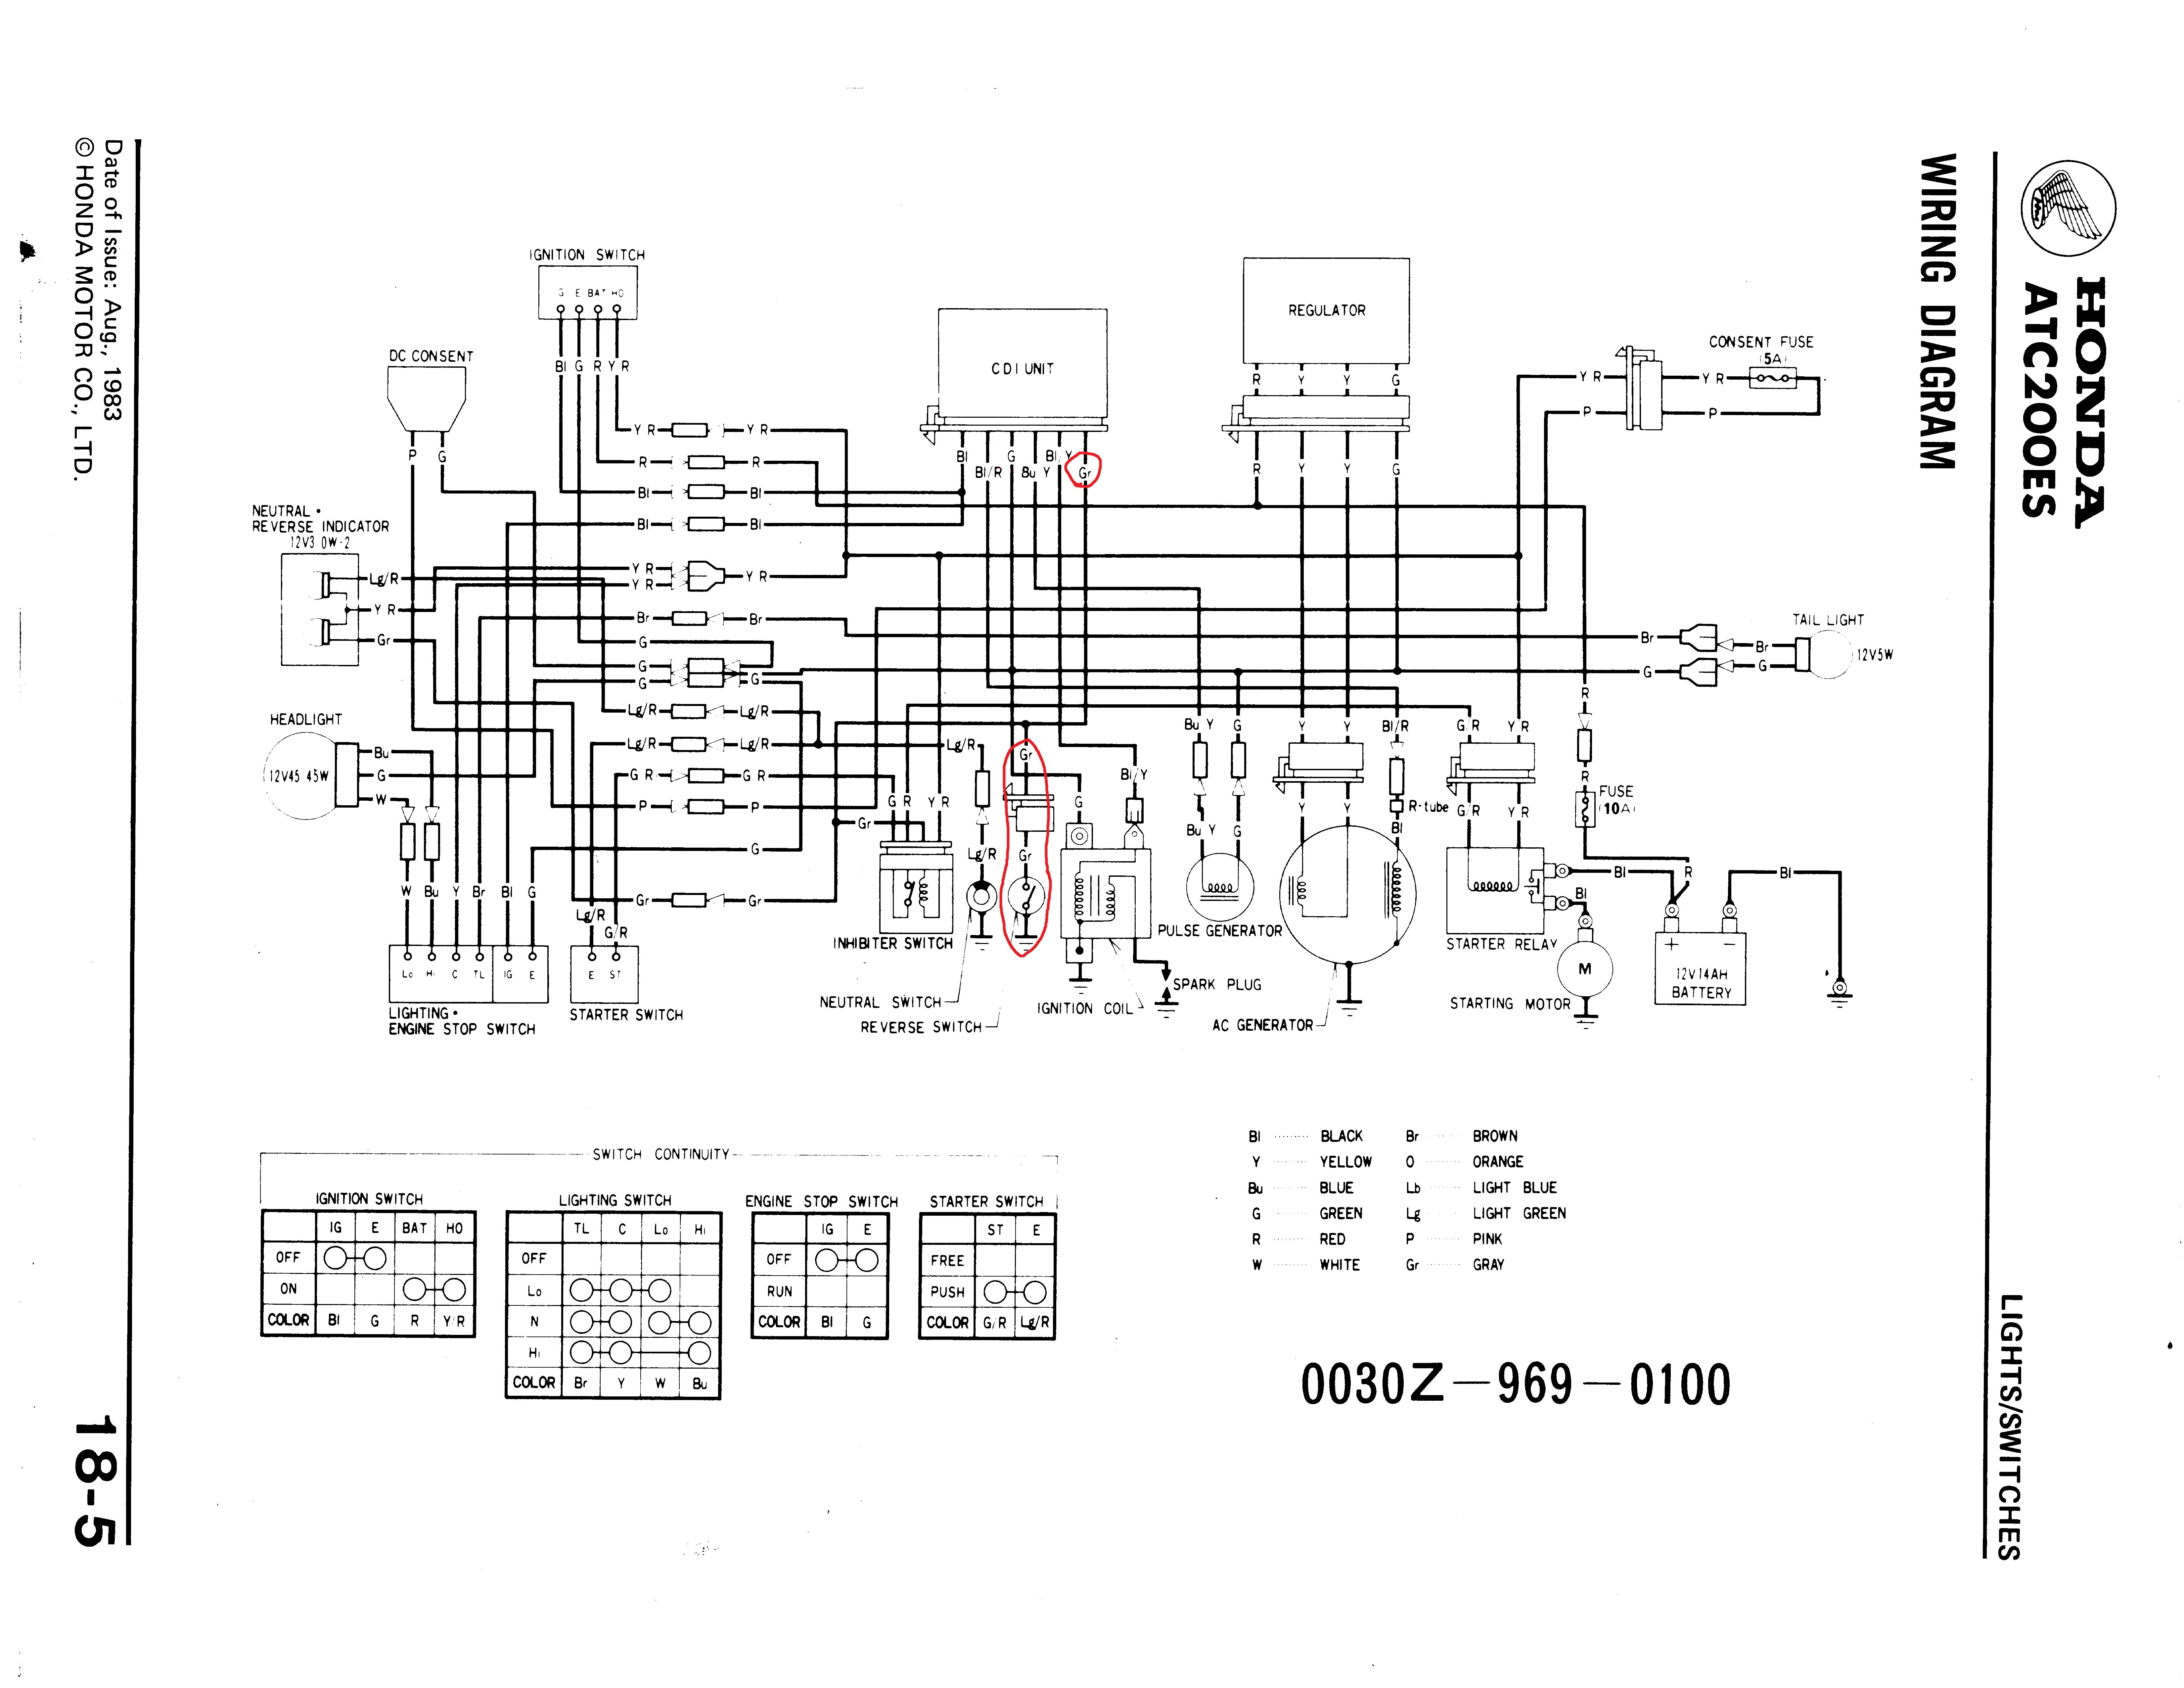 honda 300 fourtrax ignition wiring diagram Collection-Honda 300 Fourtrax Ignition Wiring Diagram Honda 300 Fourtrax Wiring 1-q